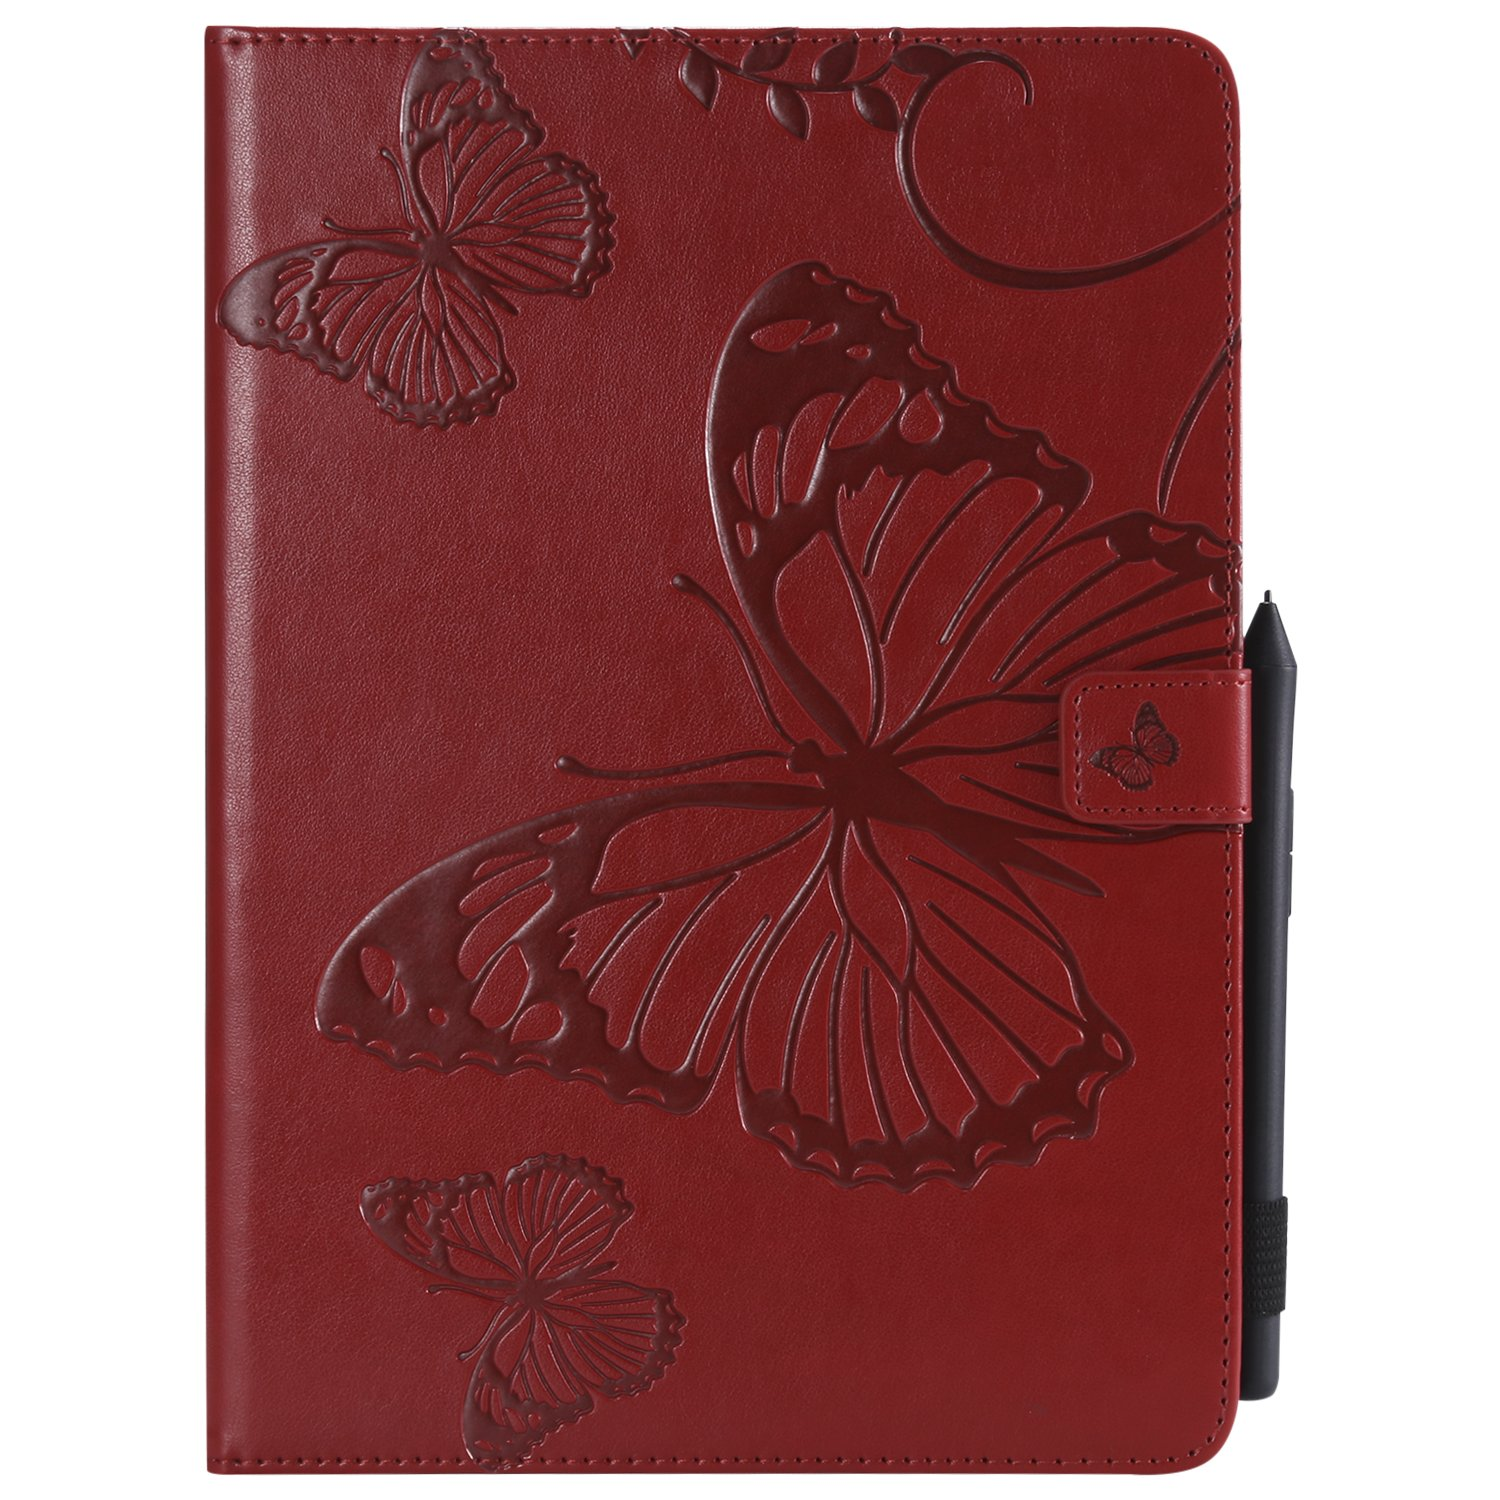 Bear Village iPad Pro 9.7 Inch Case, Butterfly Embossed Anti Scratch Shell with Adjust Stand, Smart Stand PU Leather Case for Apple iPad Pro 9.7 Inch, Red by Bear Village